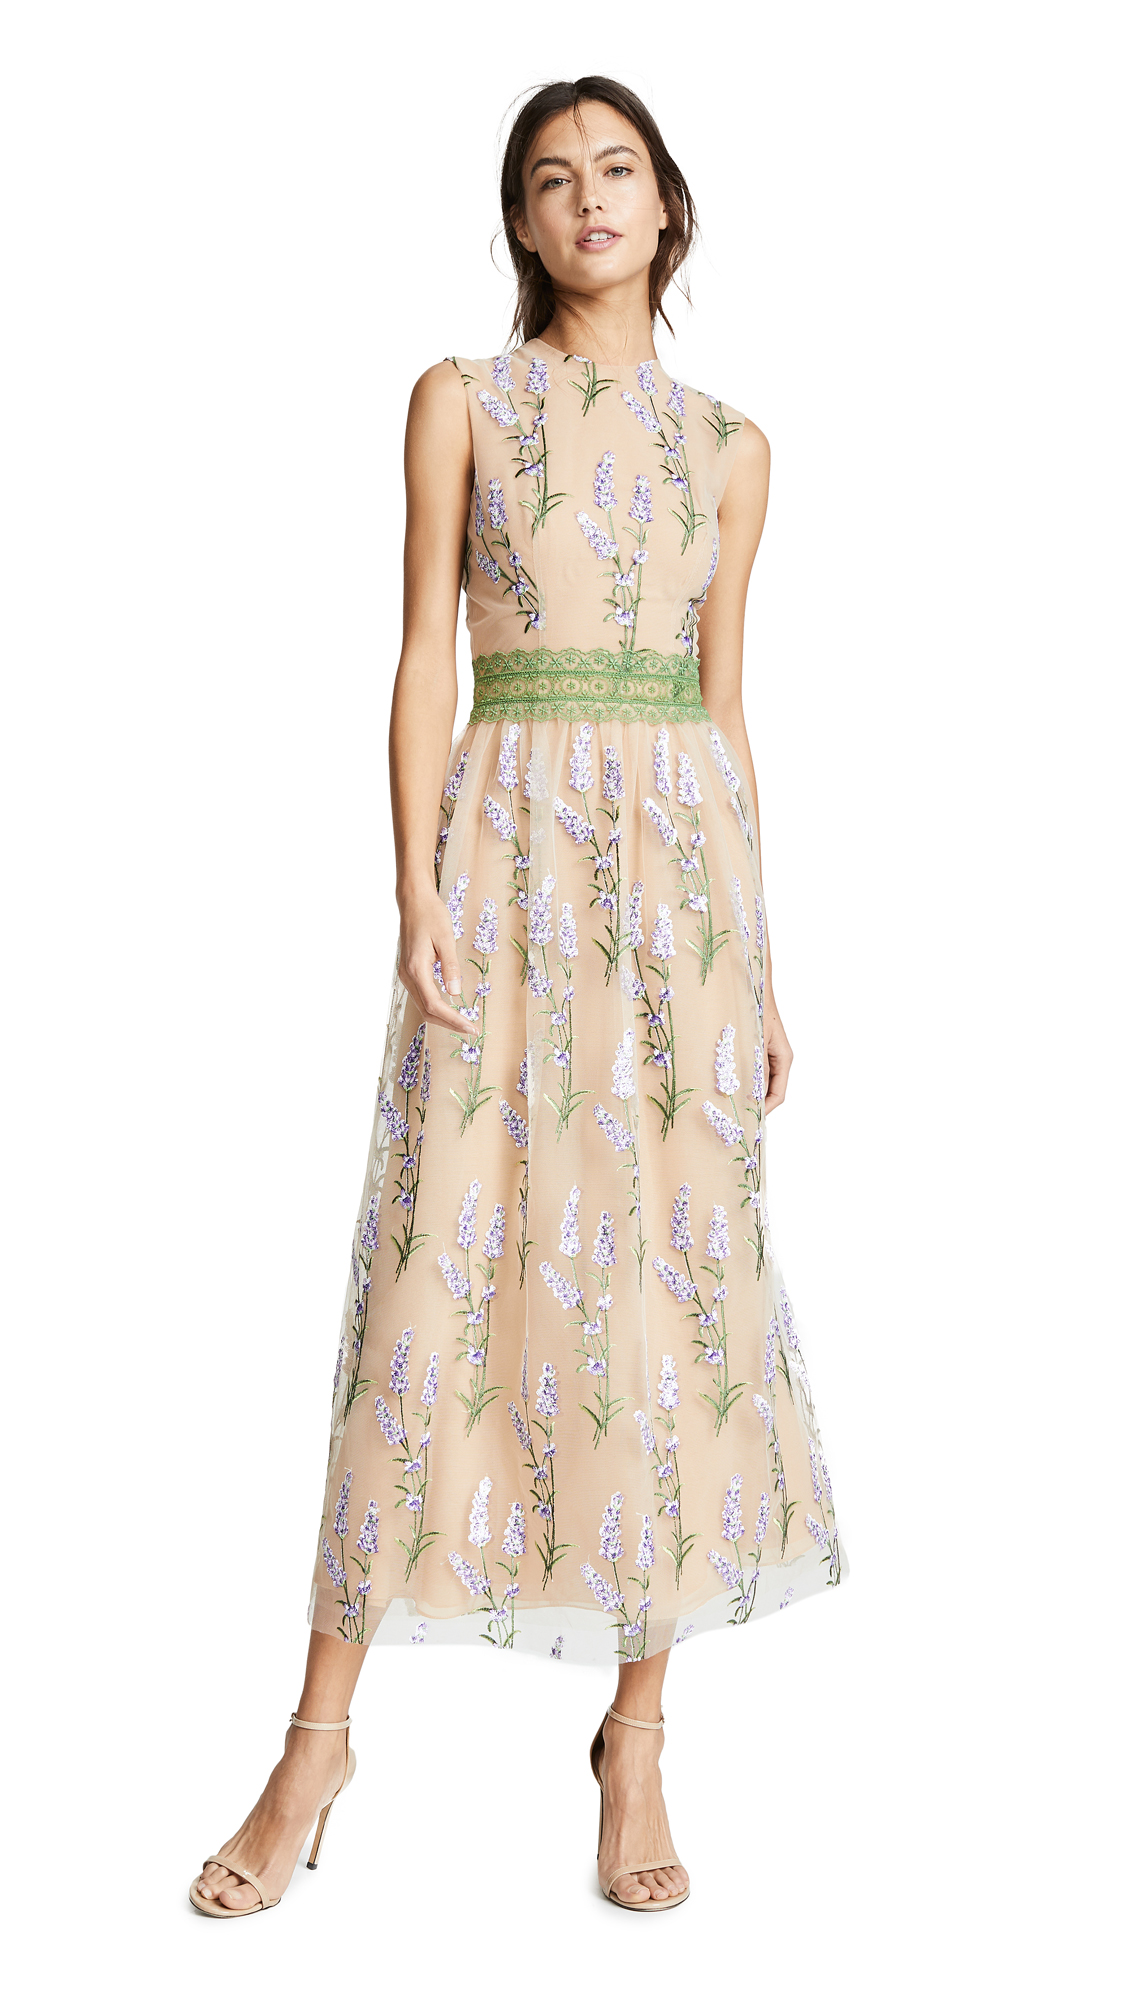 COSTARELLOS Sleeveless Embroidered Sequin Tulle And Lace Trim Dress in Blush Multi